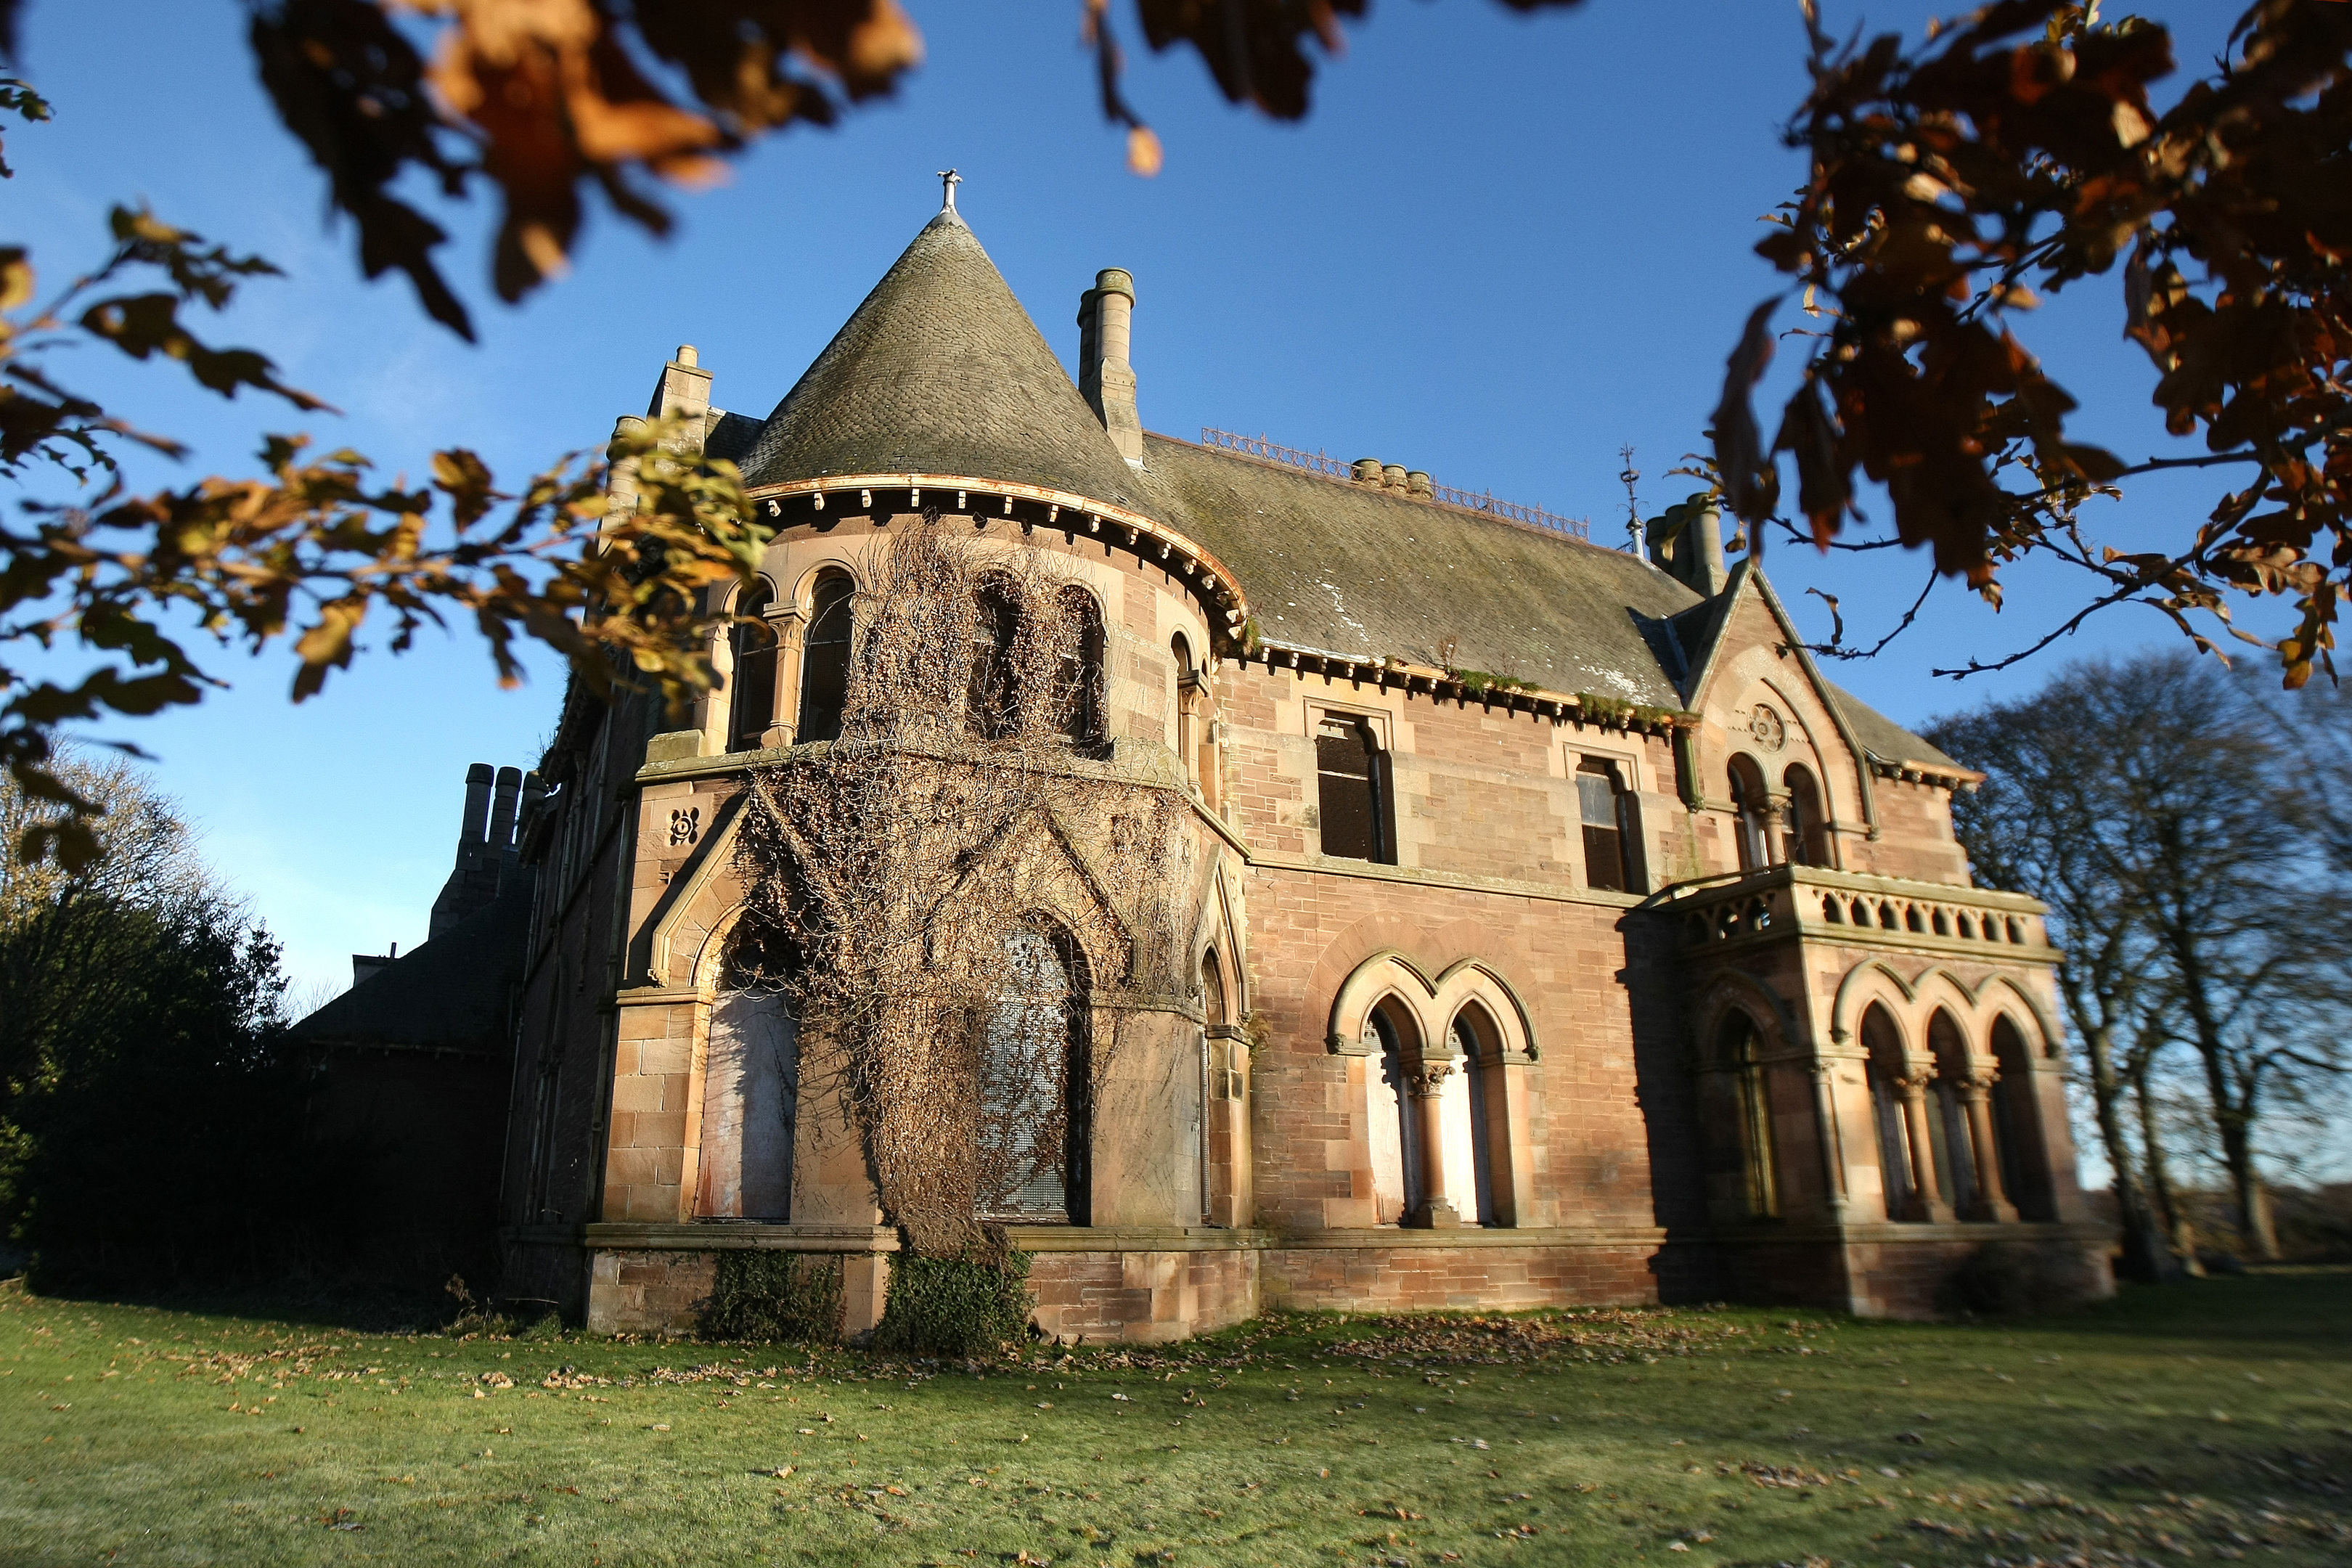 The Elms mansion house in Arbroath